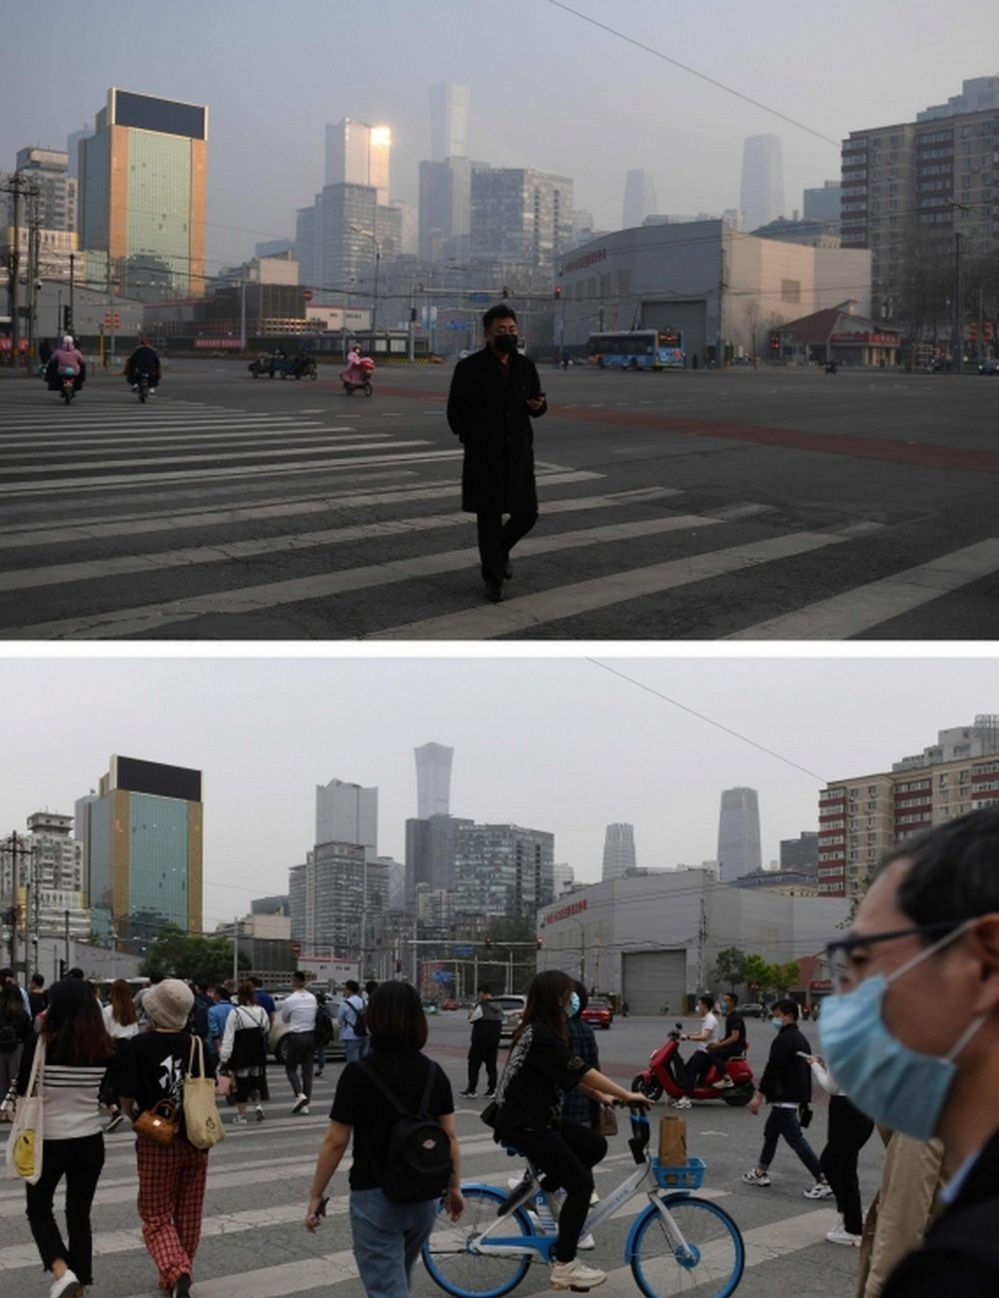 A man crosses a normally busy intersection in Beijing on 11 February, 2020 (top) and people on the same street on 13 May